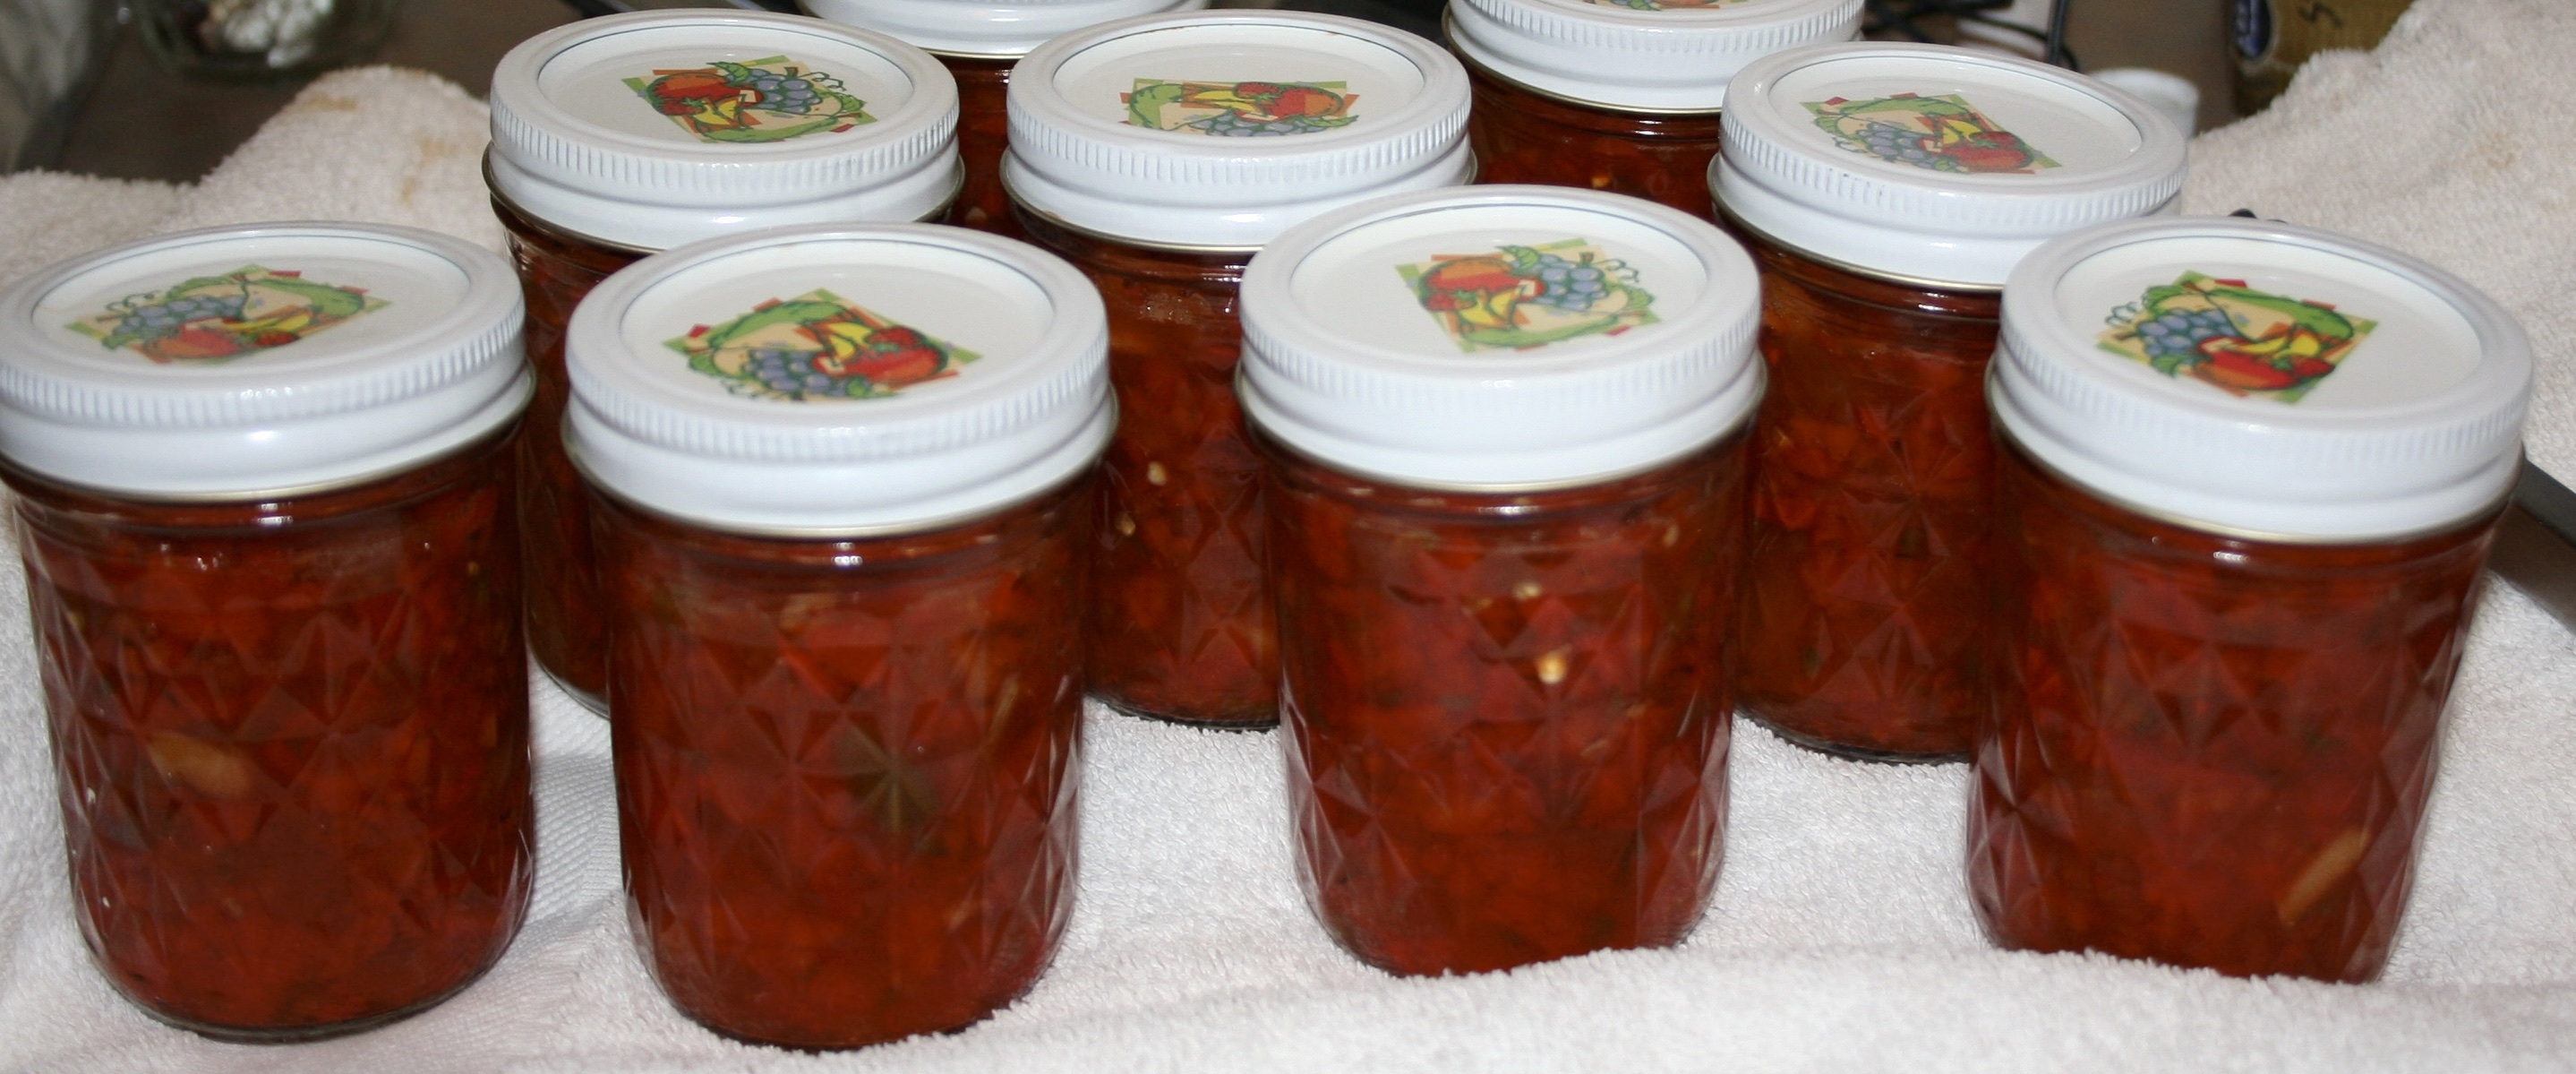 jars of relish